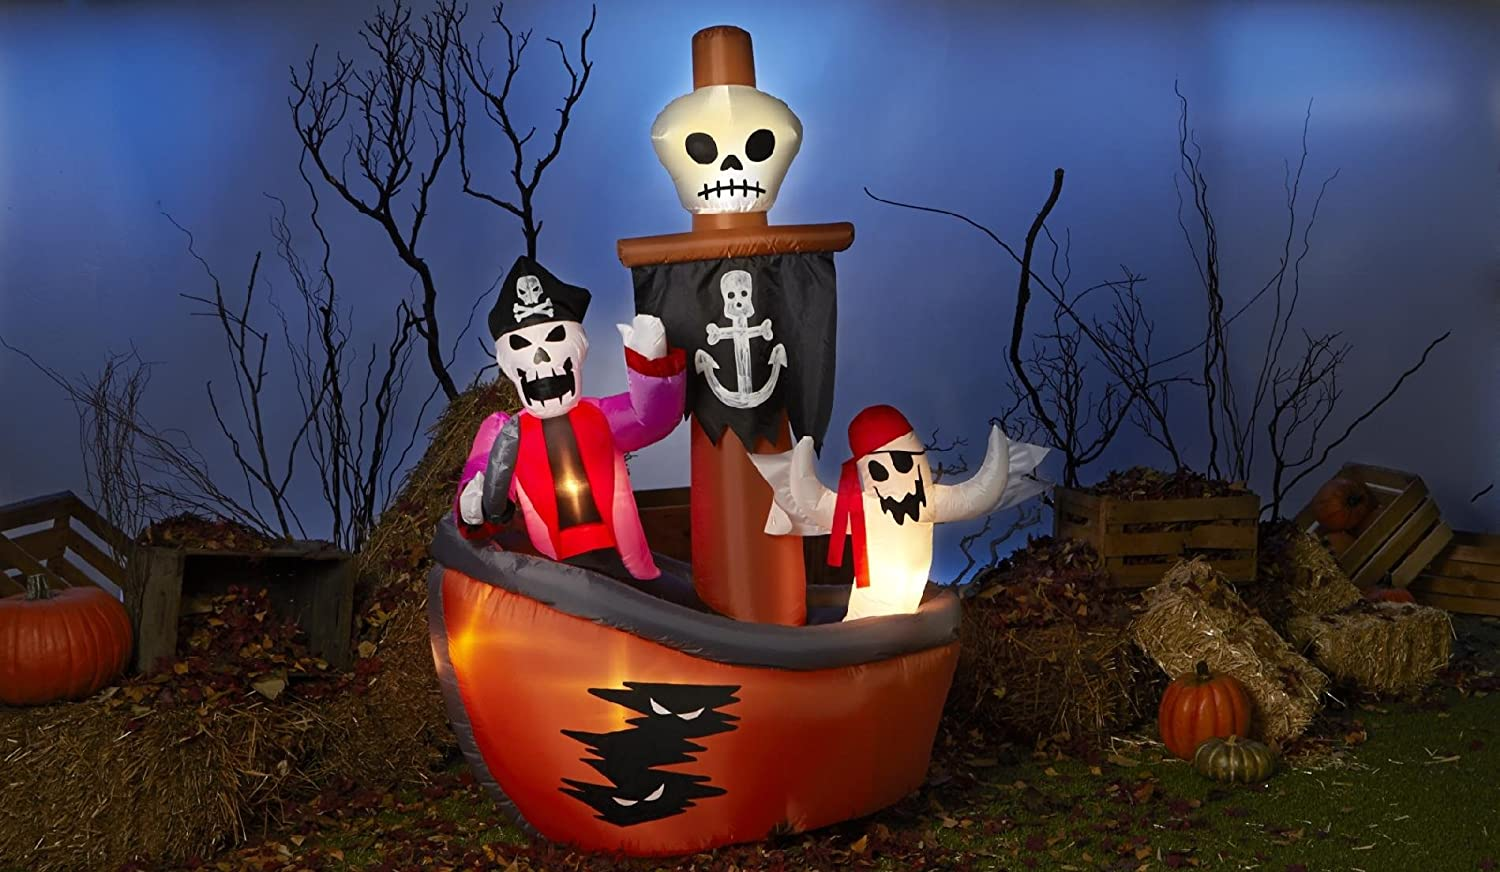 Outdoor inflatable halloween decorations - Totally Ghoul Airblown Halloween Decoration Ghost Pirate Ship Airblown Inflatables Make A Wonderful Addition To Your Outdoor Halloween D Cor